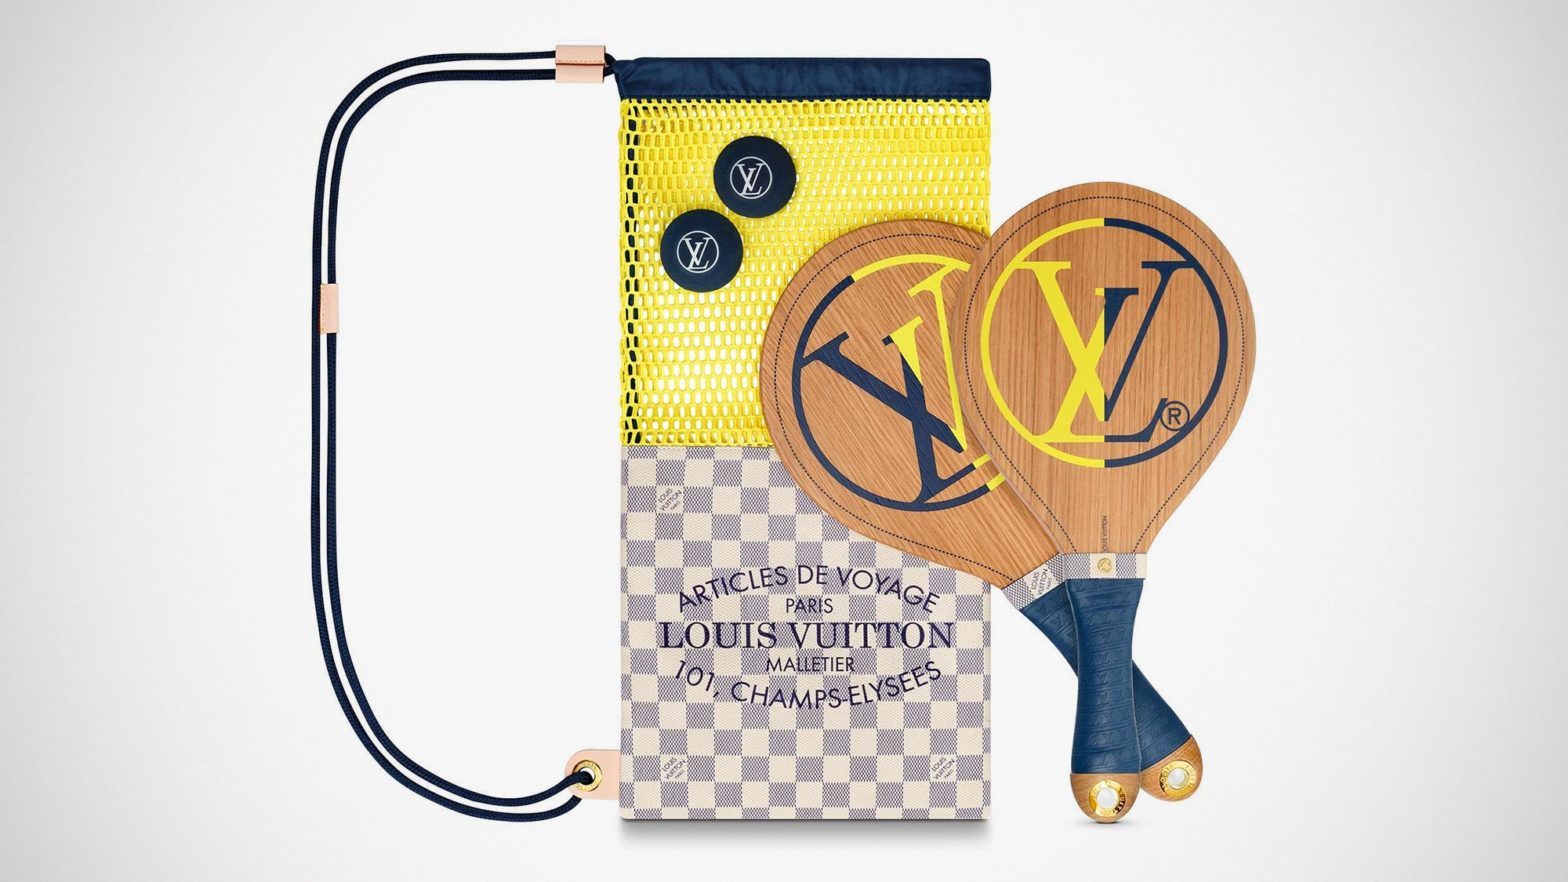 Louis Vuitton Beach Bat Set